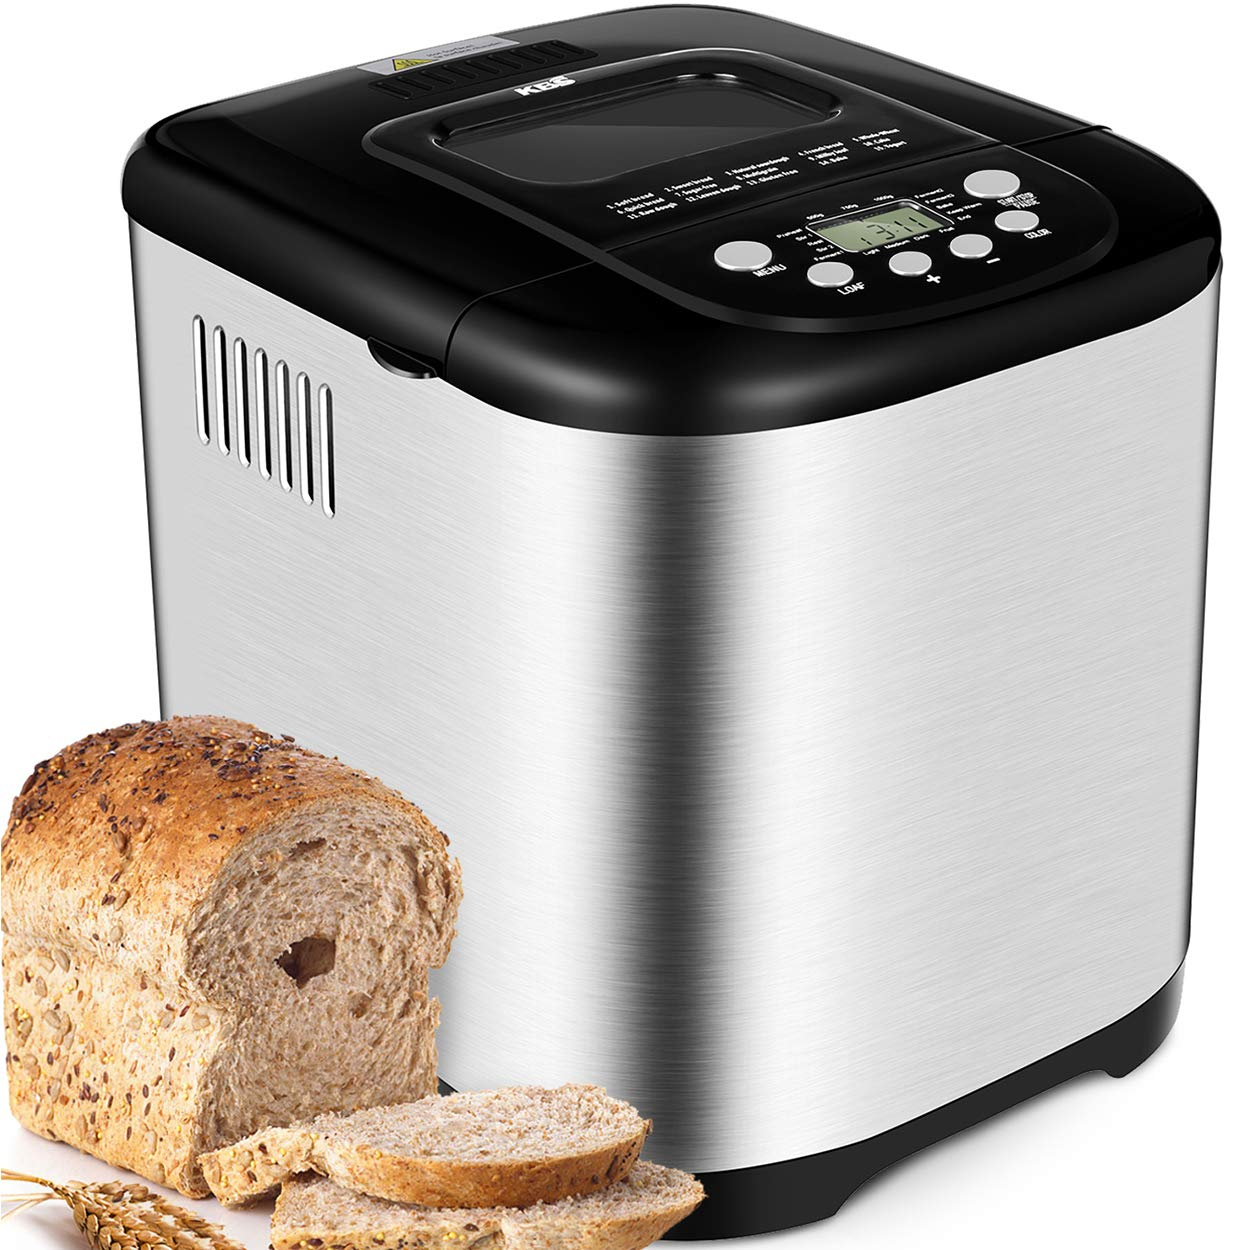 KBS Upgraded Automatic Bread Maker, 2LB Programmable Stainless Steel Bread Machine, Large View Window LCD Display, 3 Loaf Sizes 3 Crust Colors, 15 Hour Delay Time& 1 Hour Keep Warm, Detachable Lid by KBS